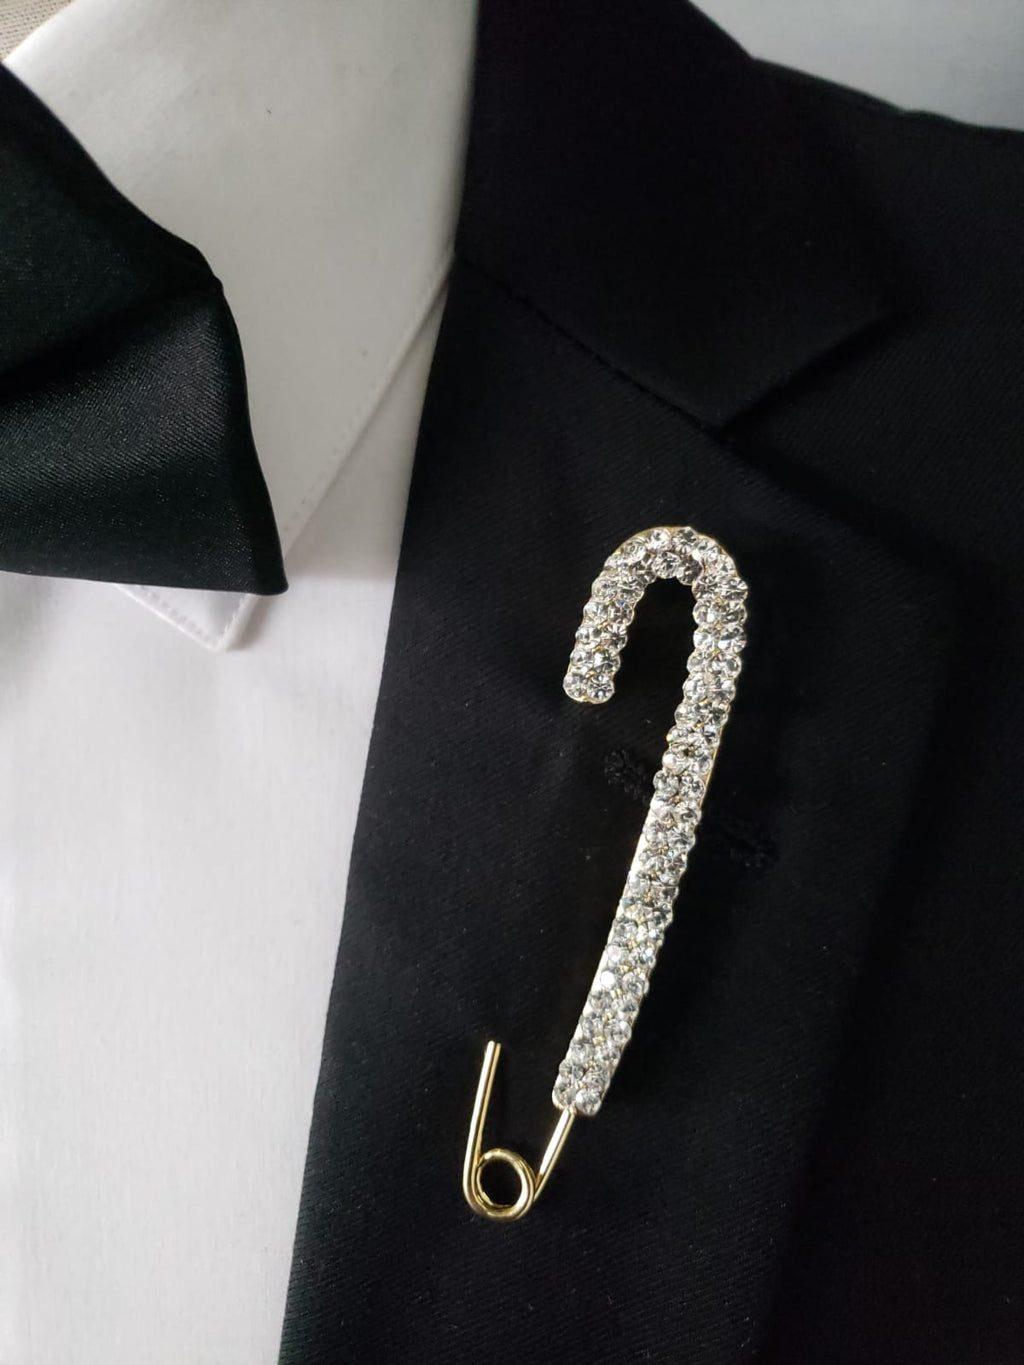 Gold and Silver Safety Pin lapel pin